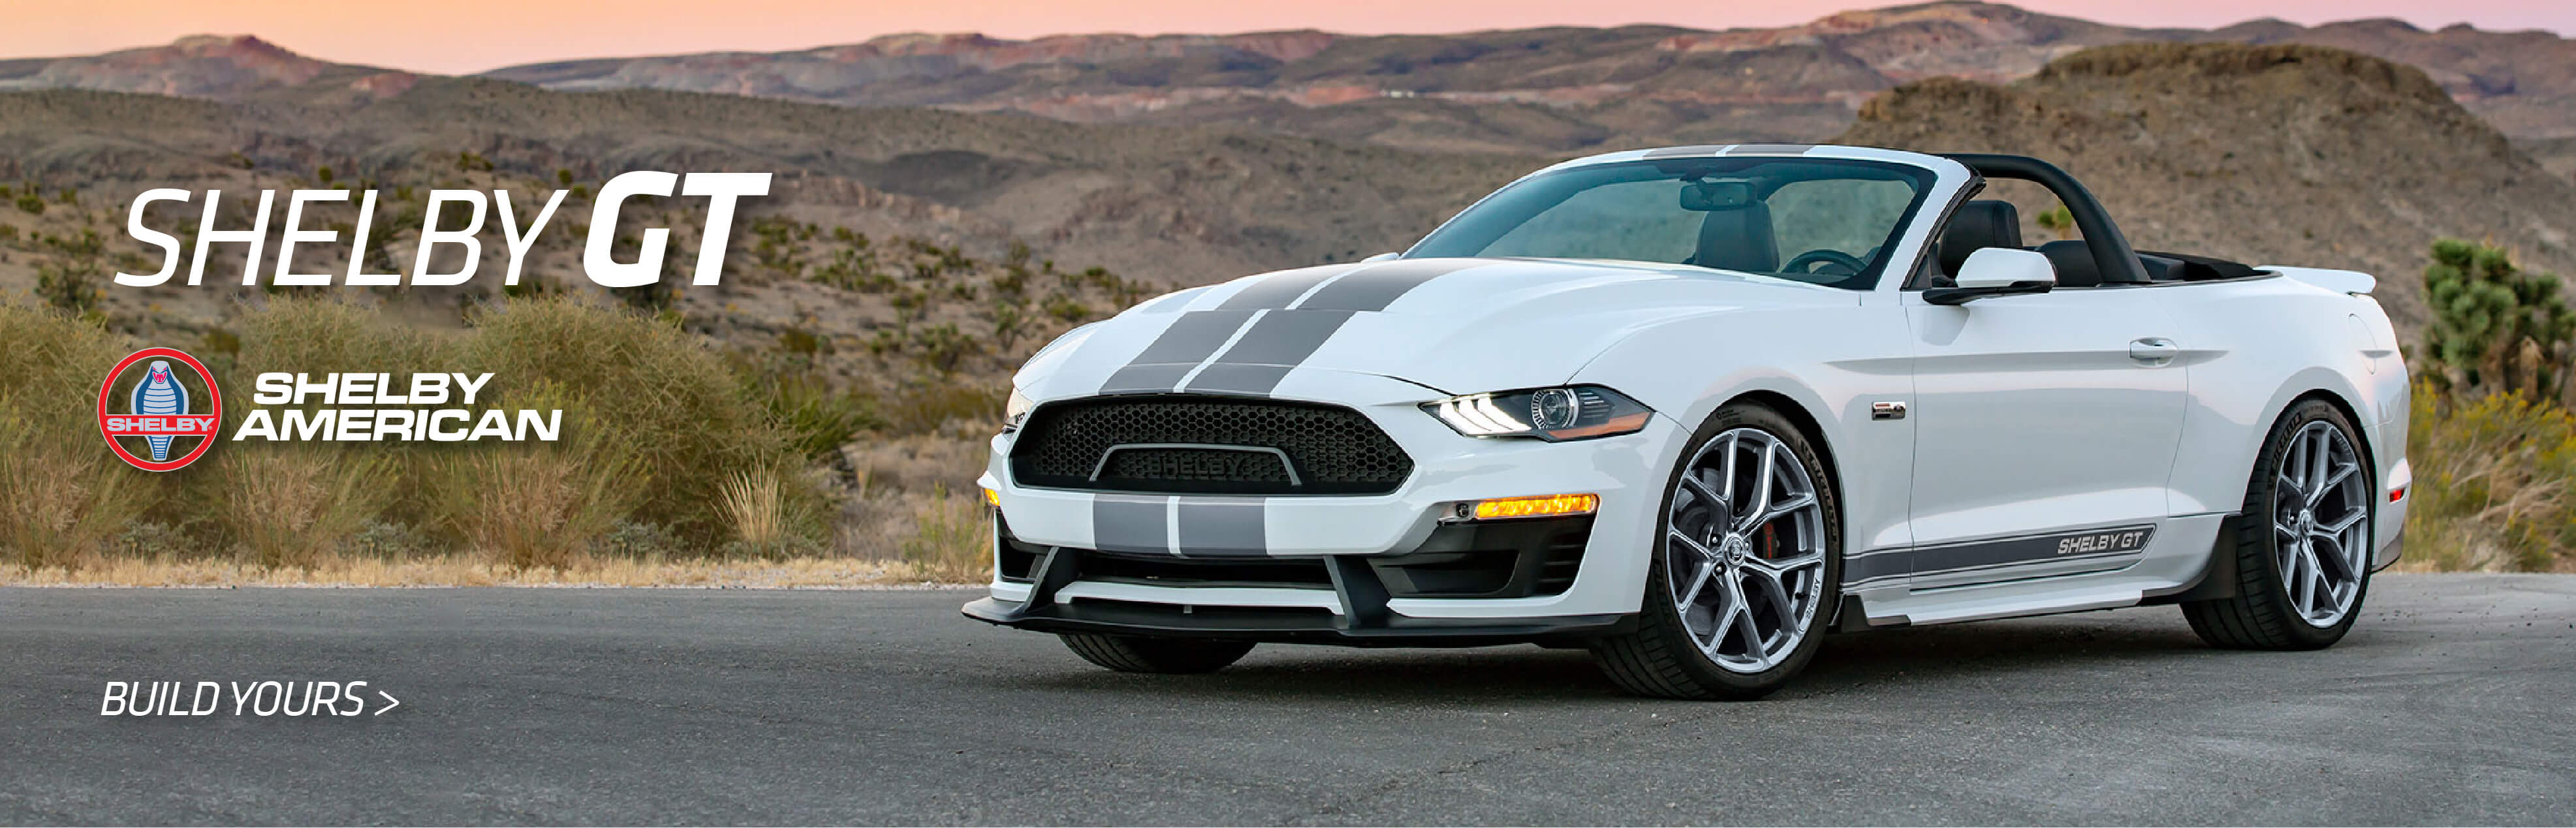 Shelby GT White